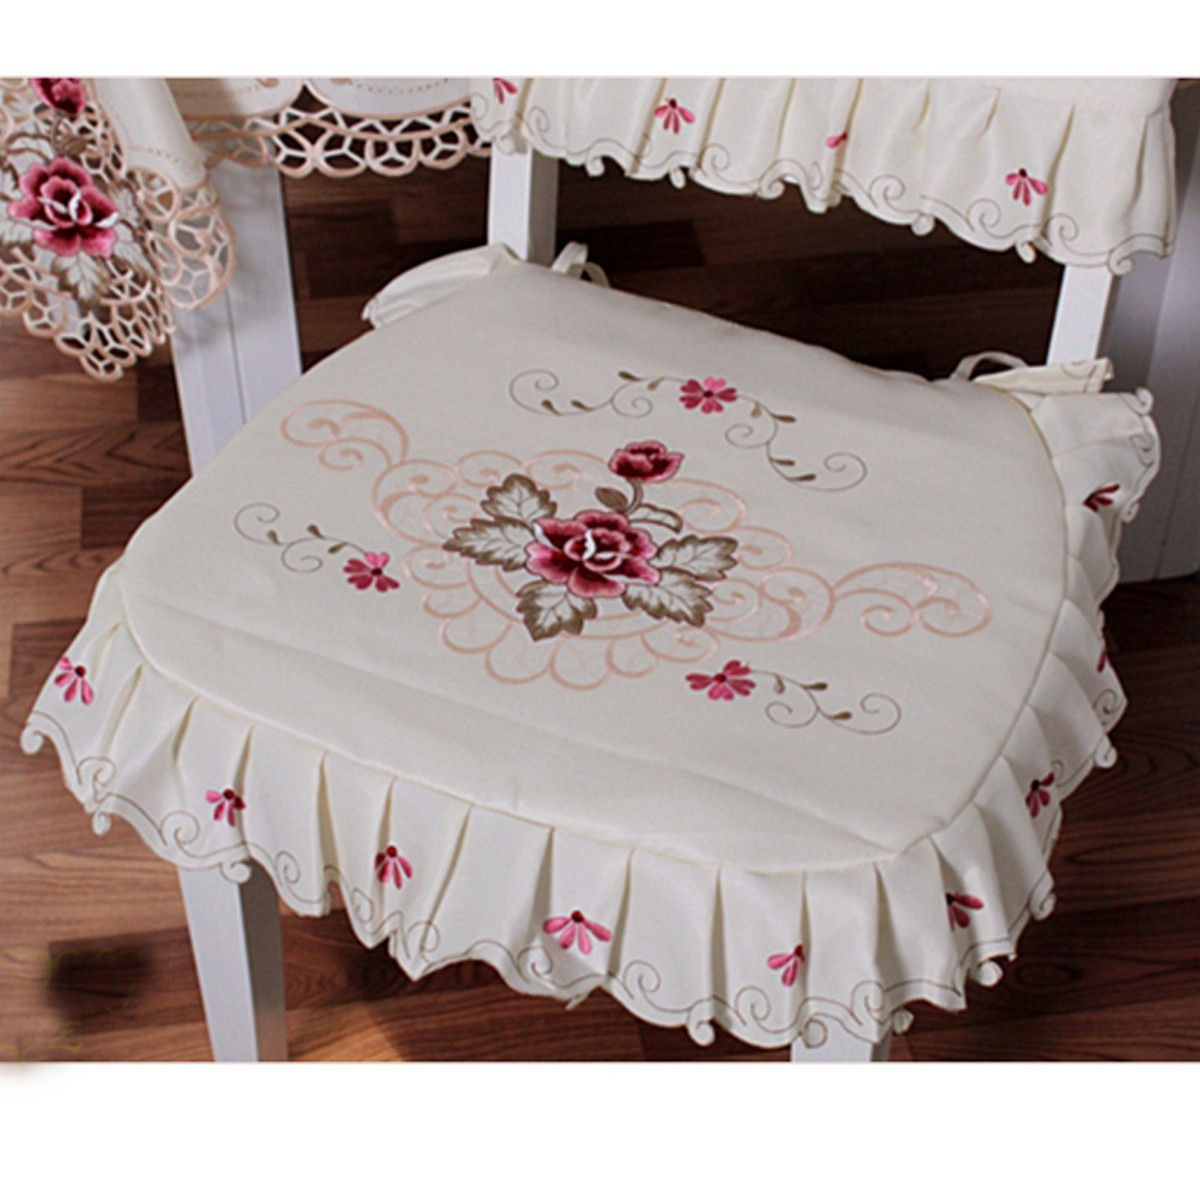 dining room chair seat cushion covers chairperson vintage flower embroidered tie on ruffle pad